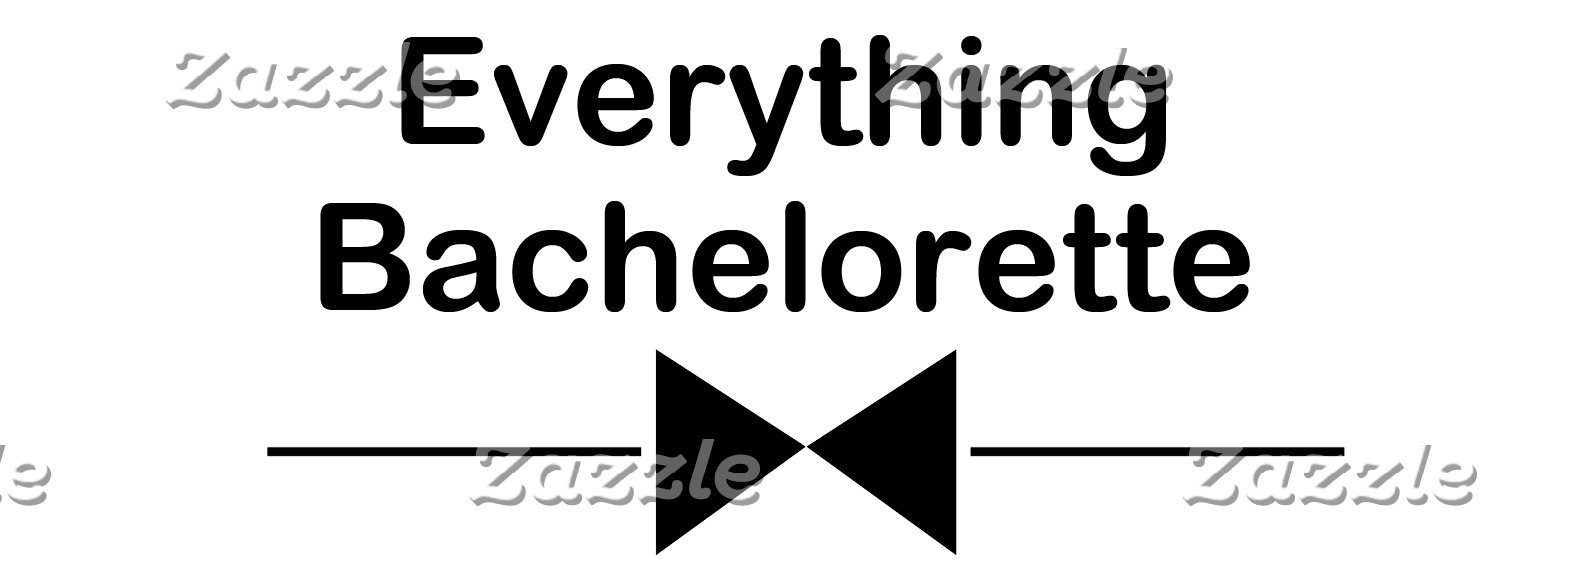 Everything Bachelorette